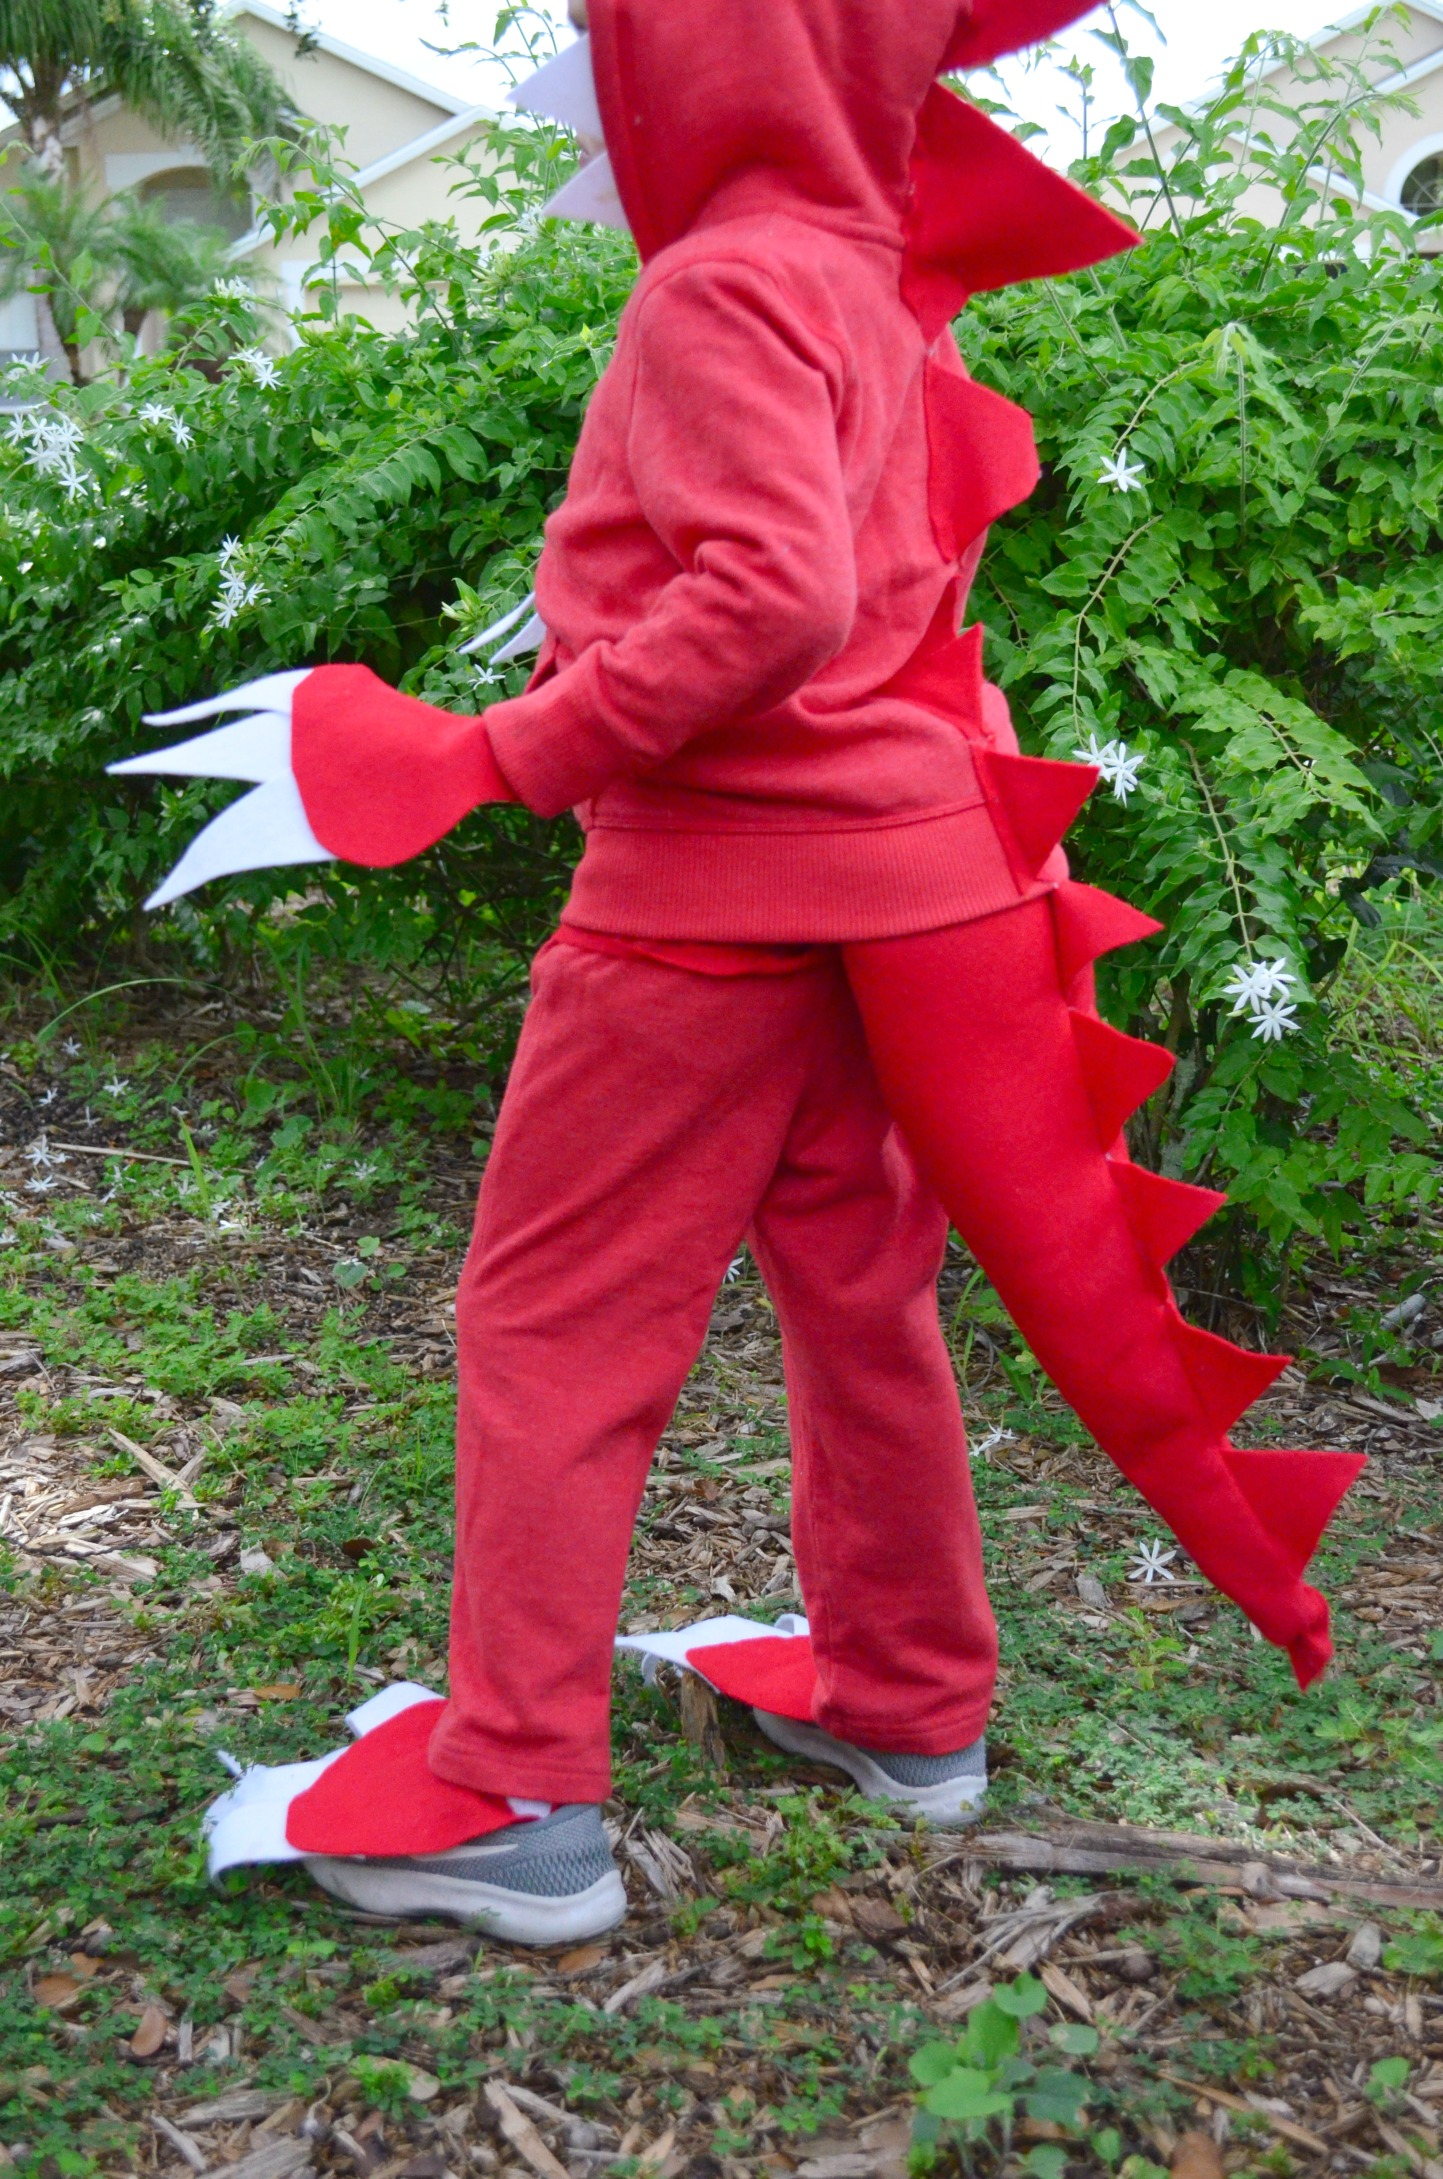 Side profile of a little boy in a red handmade dinosaur costume with claws and tail.